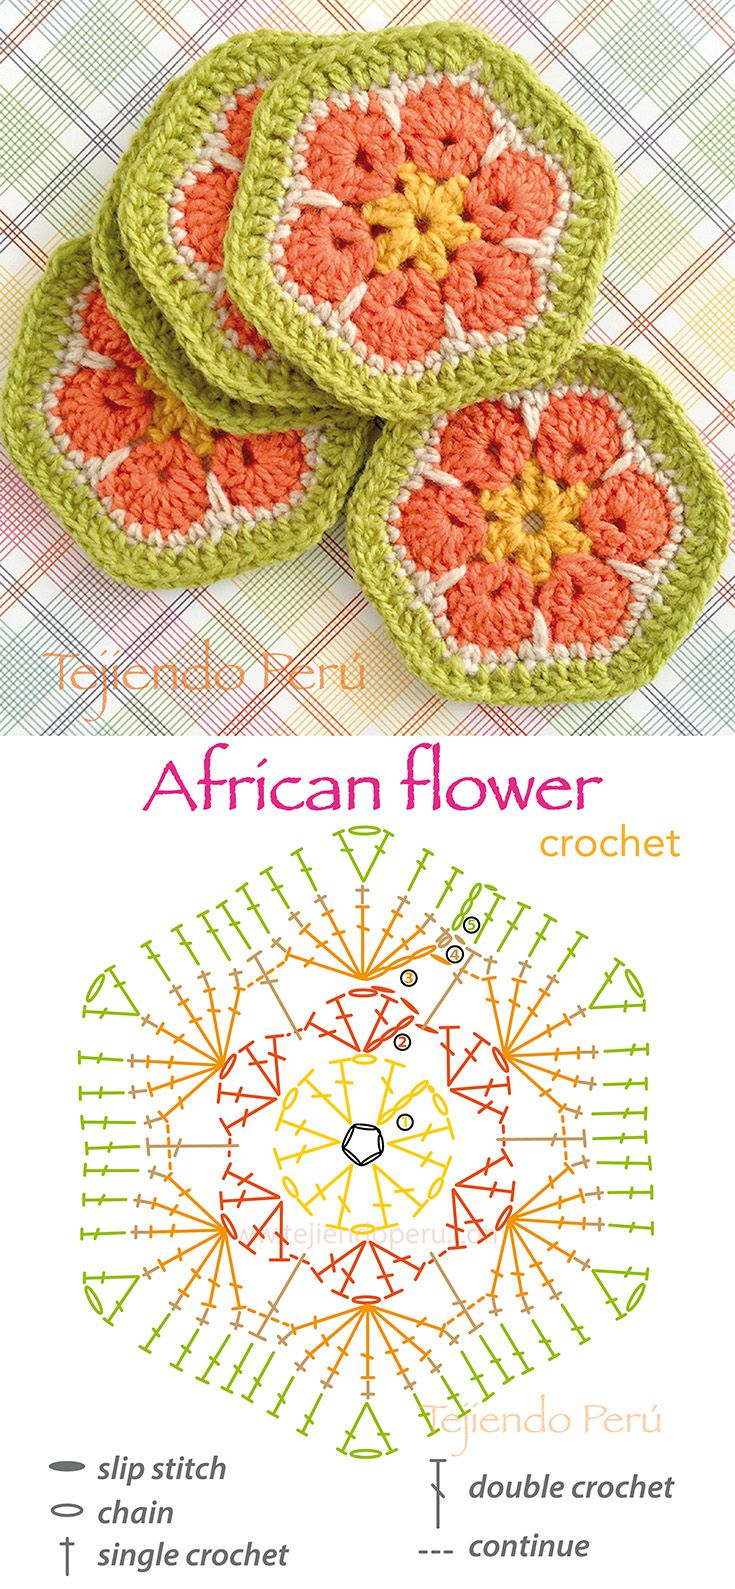 Crochet african flower pattern (chart or diagram)!